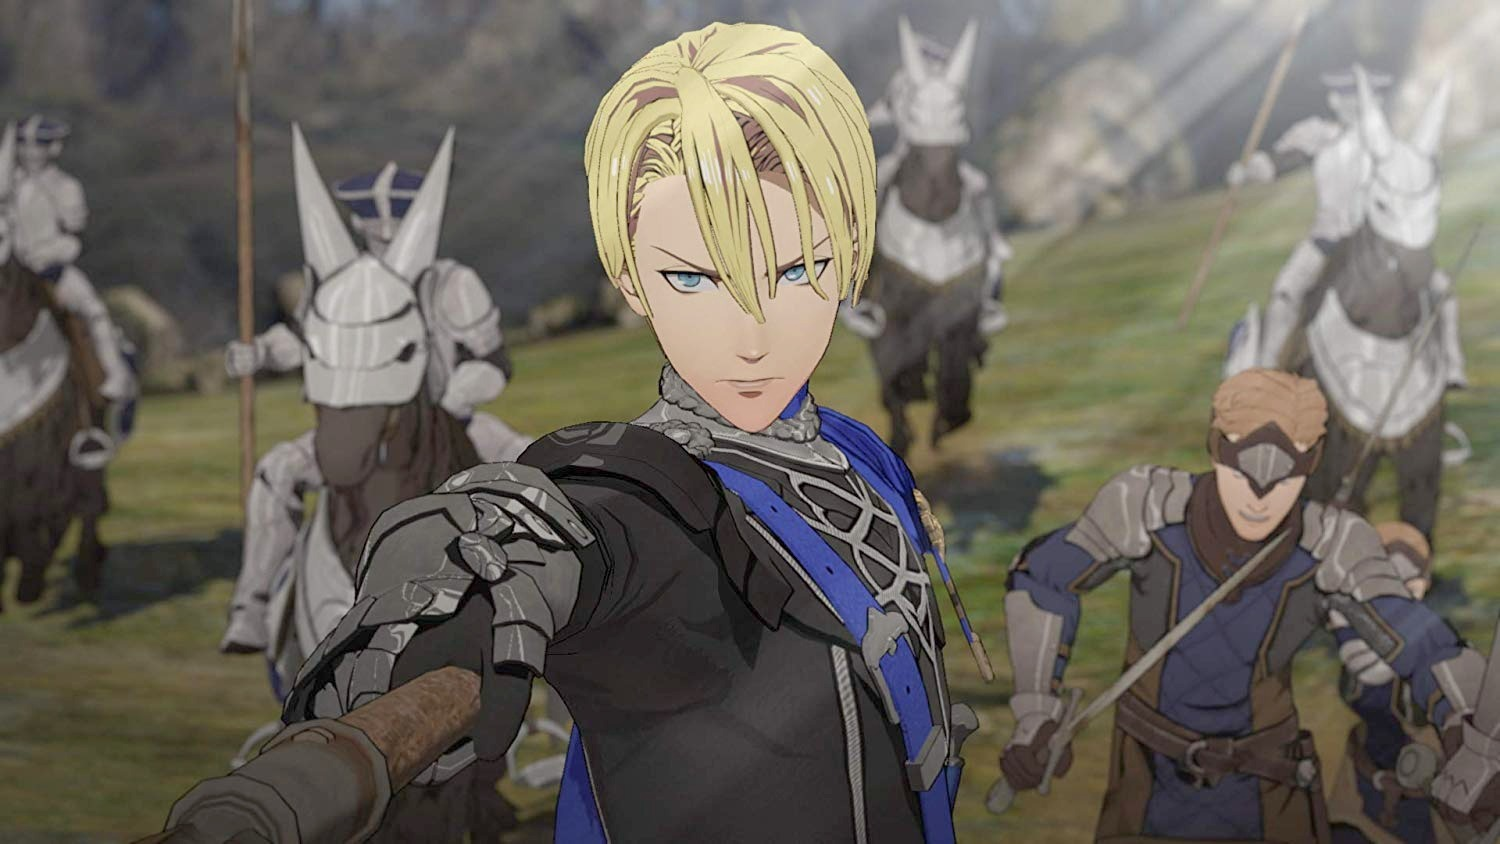 Fire Emblem - Three Houses: News, Leaks, Gameplay And Everything We Know So Far!